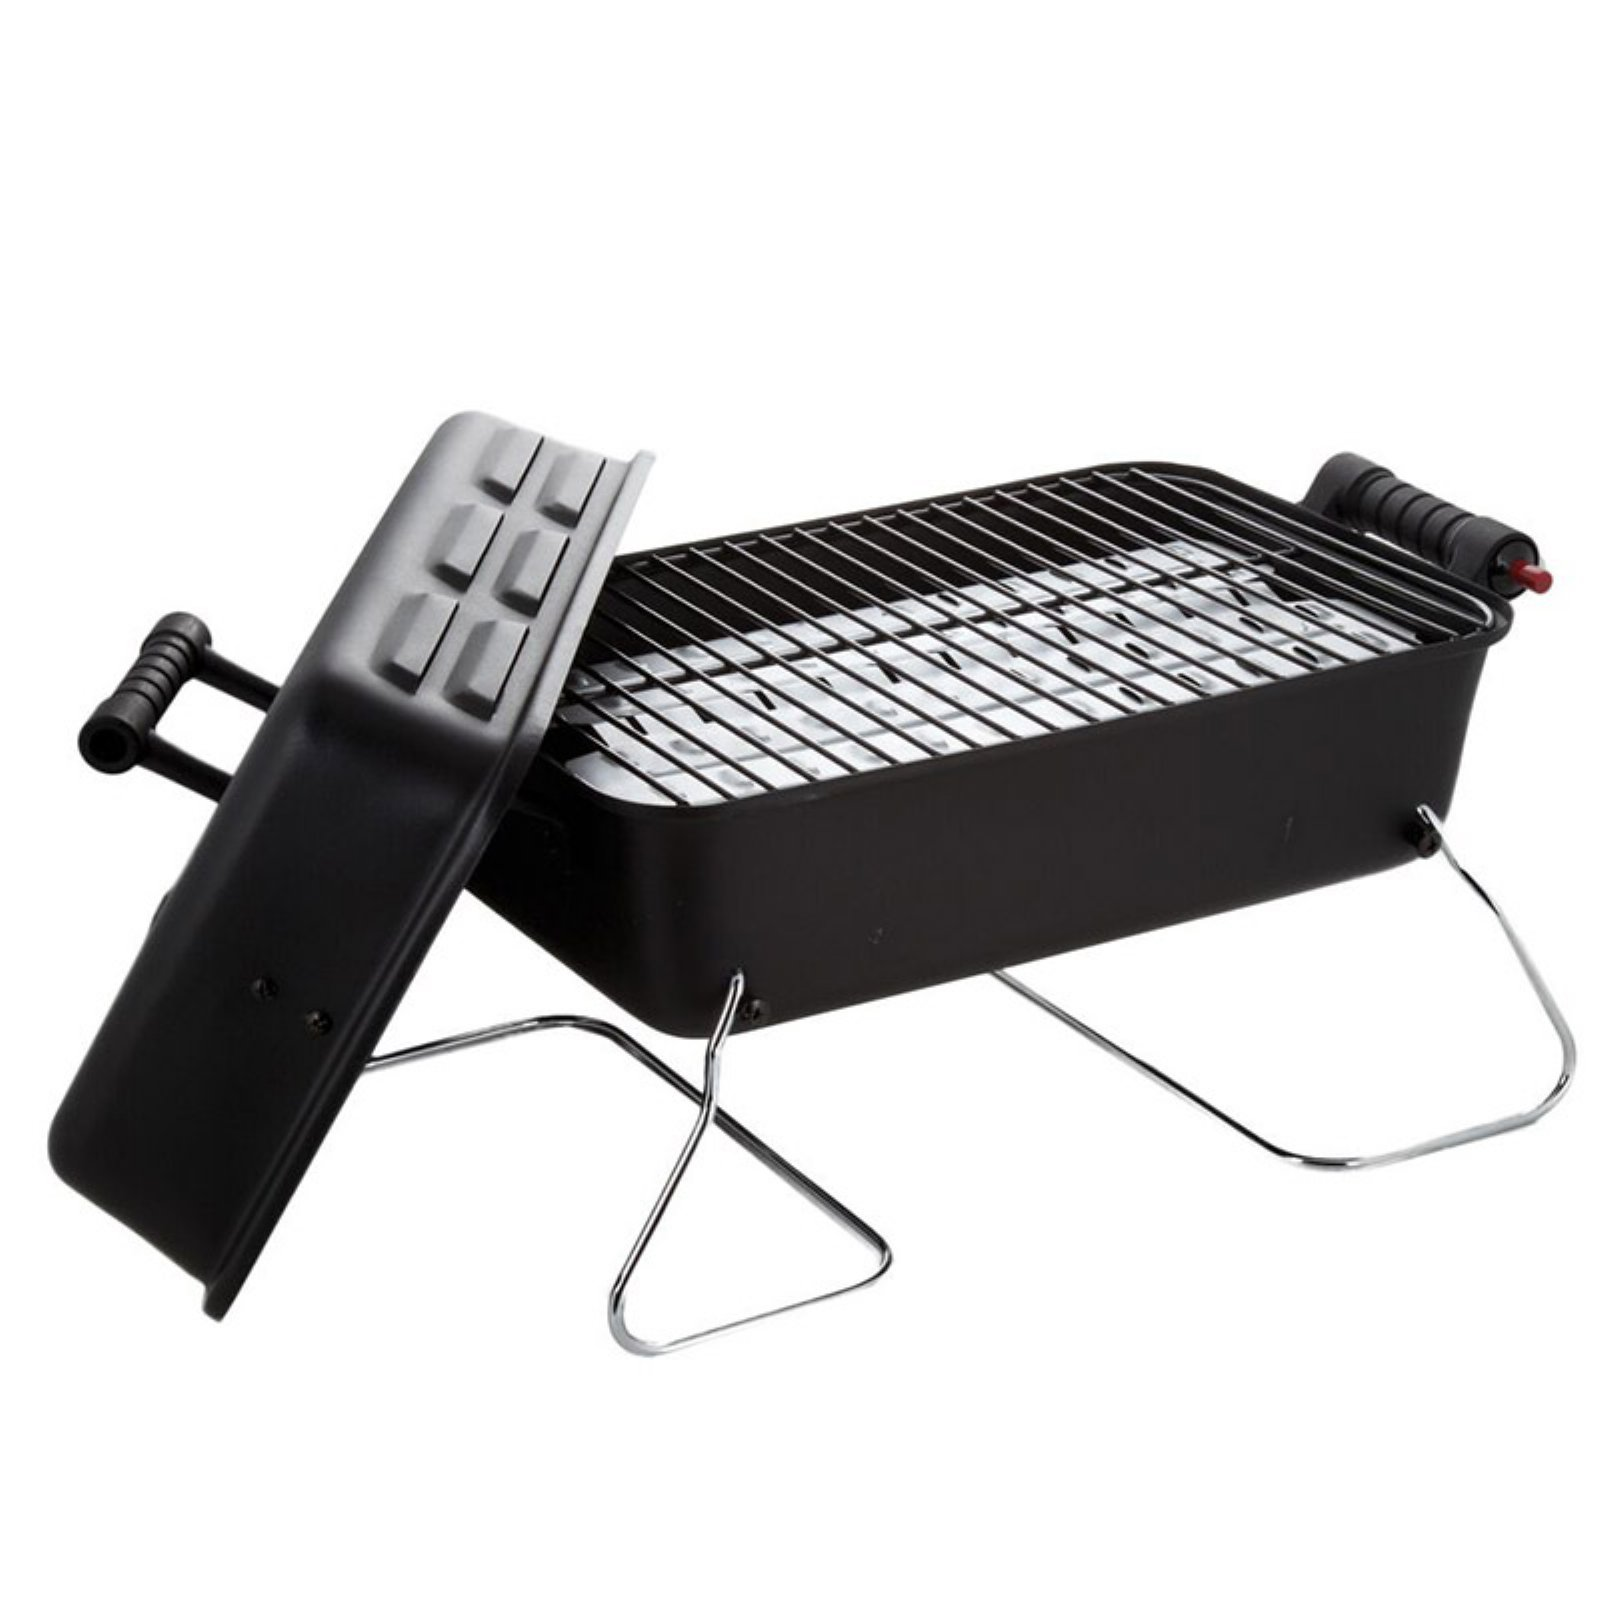 "Char-Broil 48"" Push Button Ignition Gas Grill by Char-Broil"